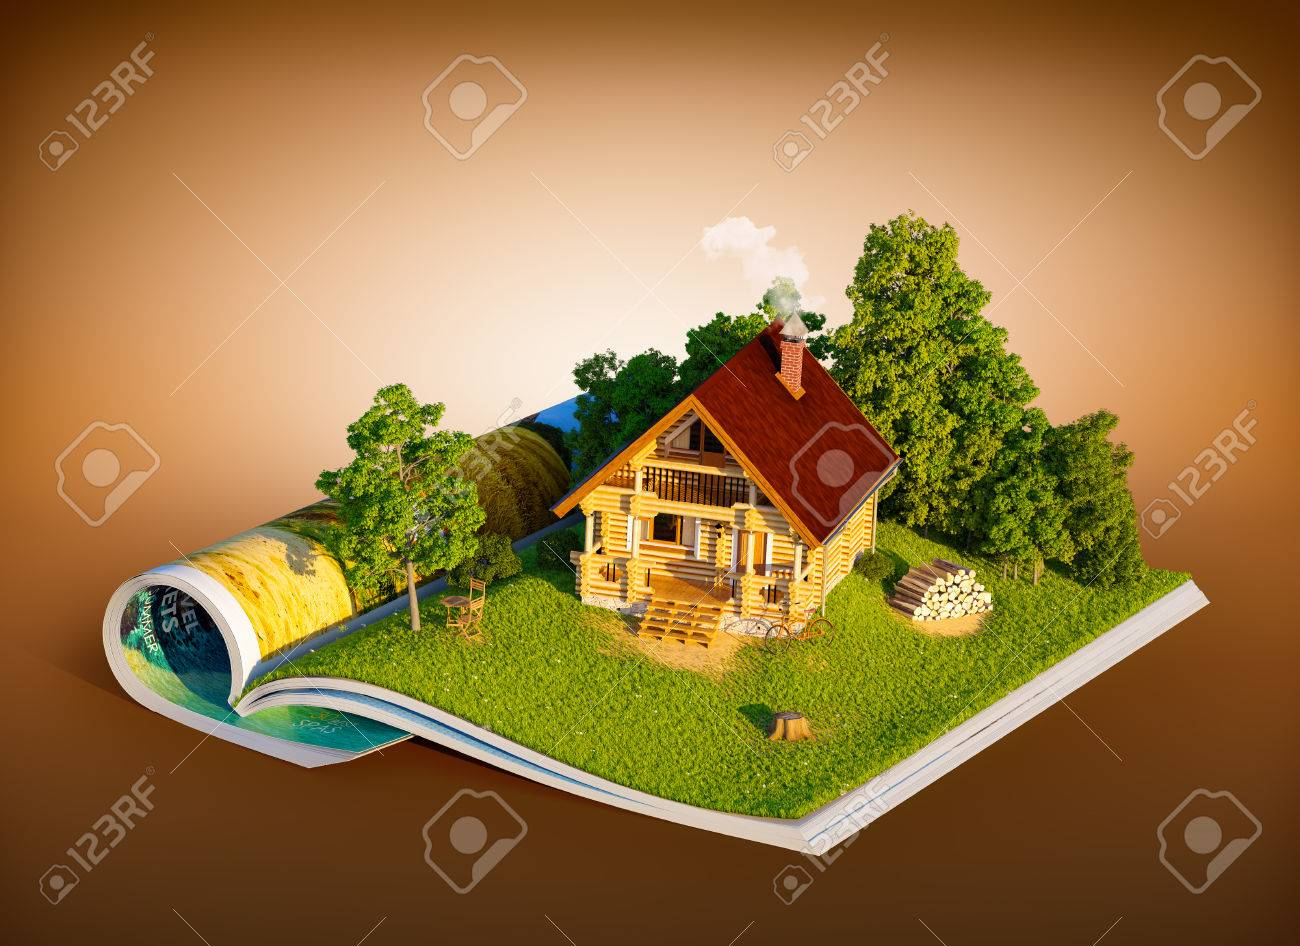 Landhaus Magazin Stock Photo